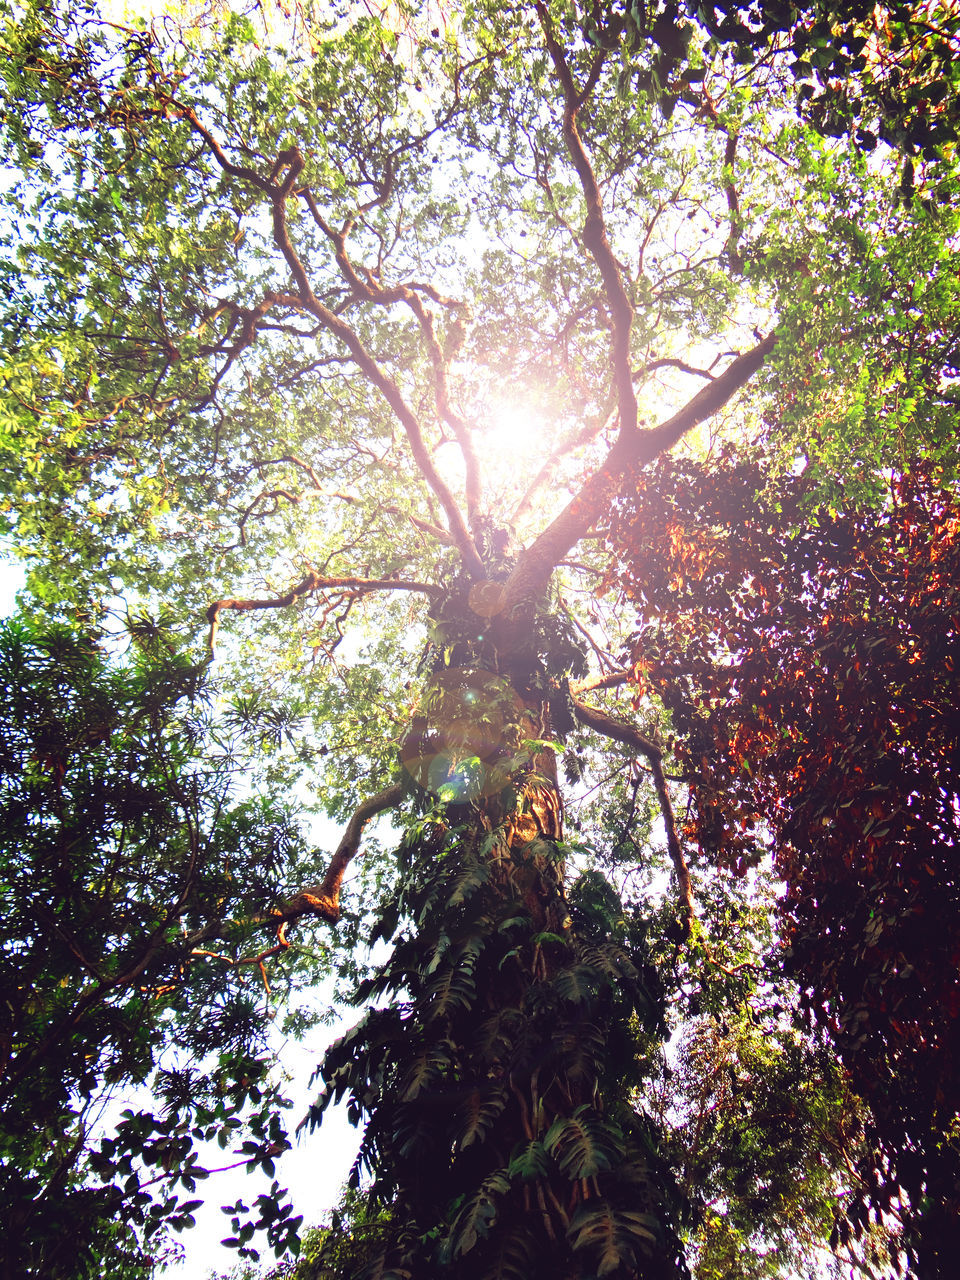 tree, growth, low angle view, branch, nature, tree trunk, sunlight, day, outdoors, beauty in nature, no people, forest